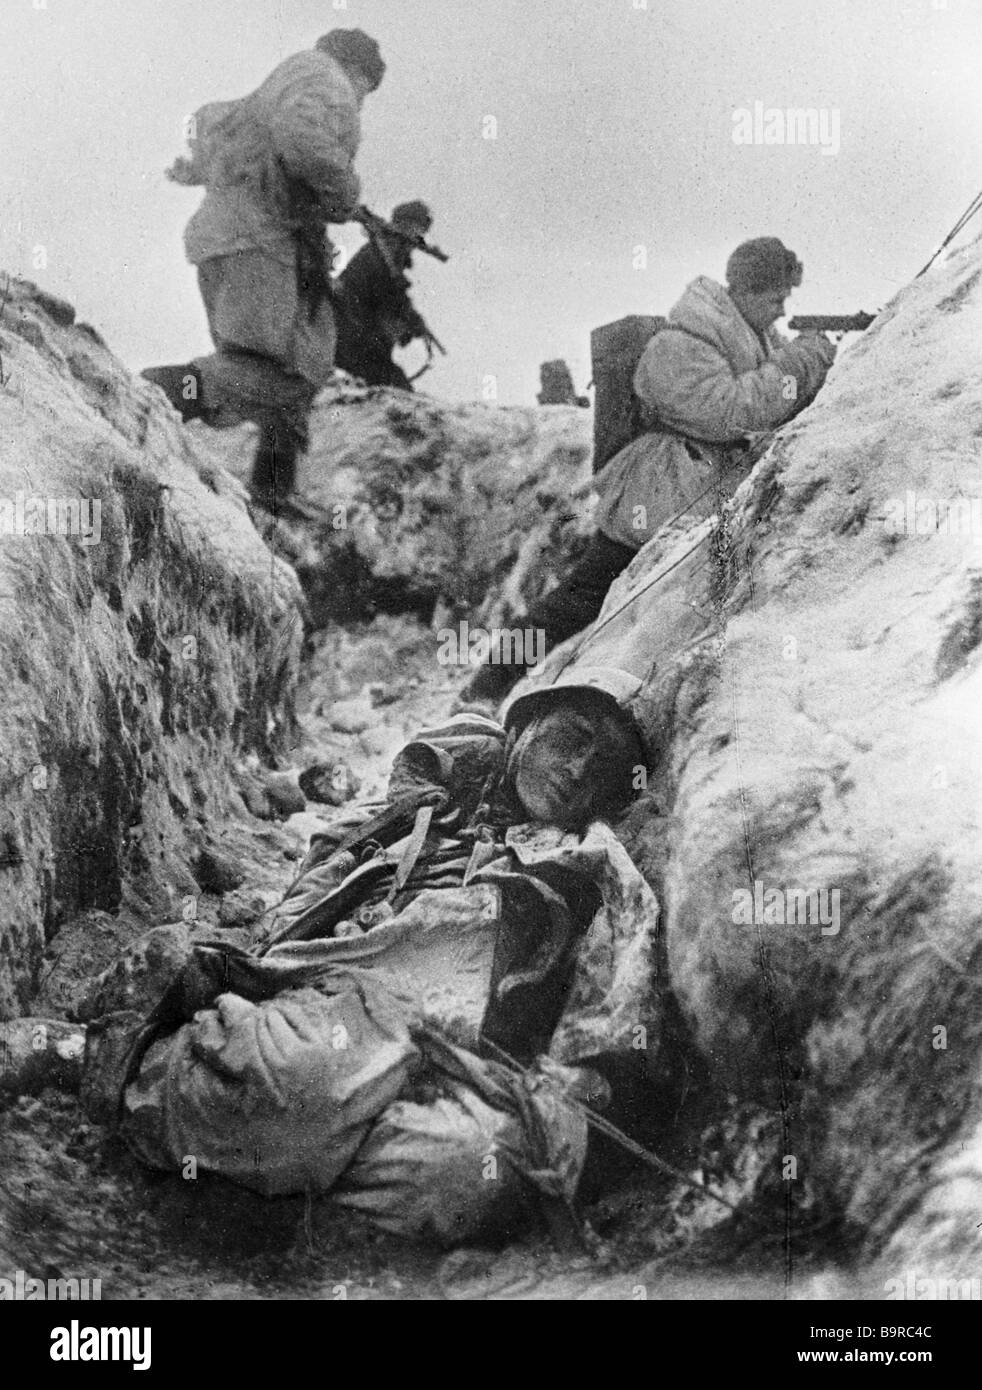 Soviet soldiers fighting for Leningrad A killed soldier in a trench - Stock Image